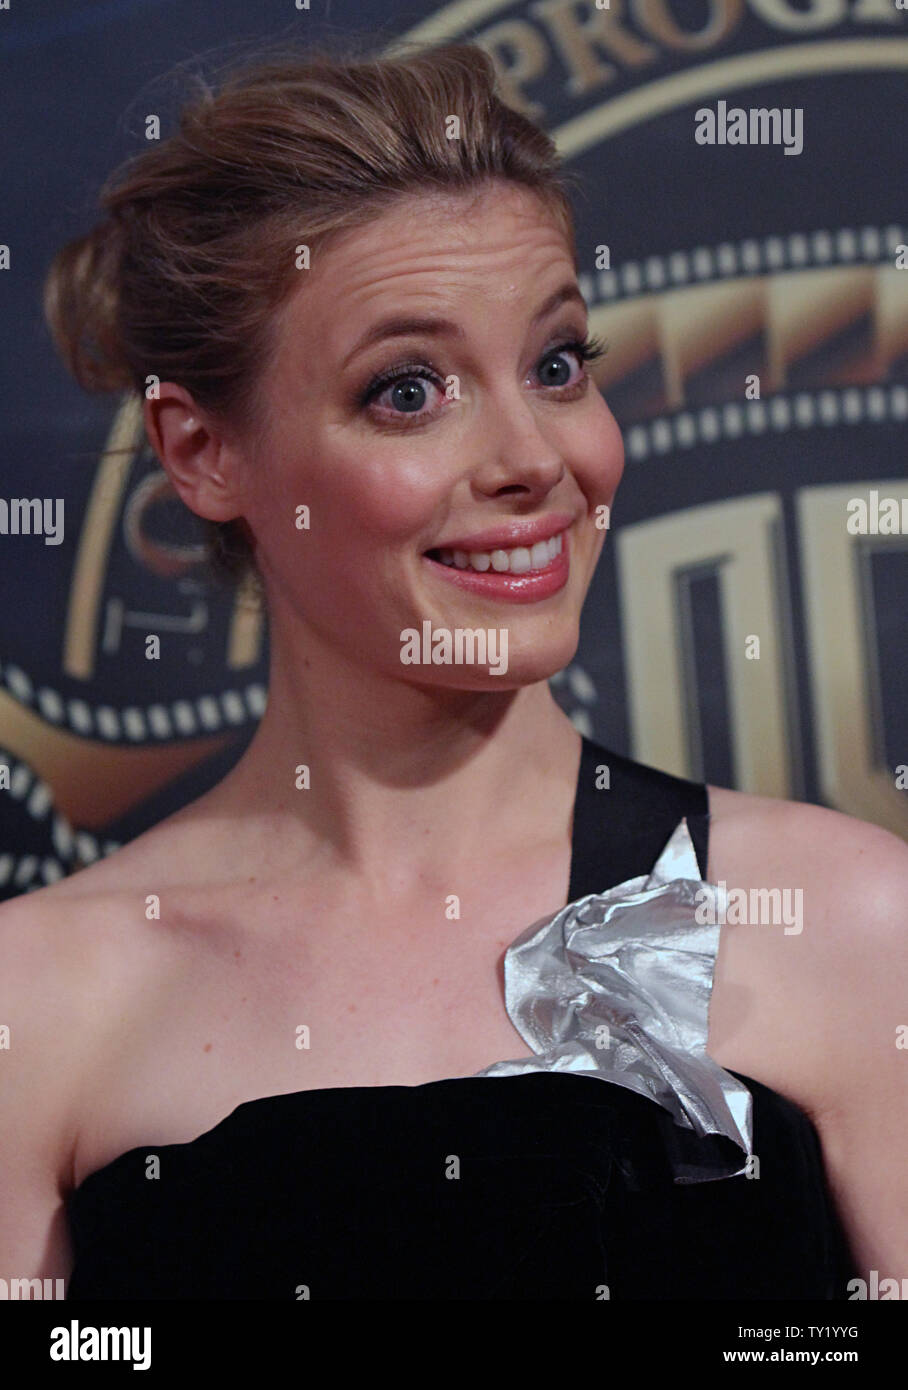 Gillian Jacobs arrives on the red carpet during the 25th annual American Society of Cinematographers Awards in the Hollywood section of Los Angeles on February 13, 2011.   UPI/David Silpa Stock Photo